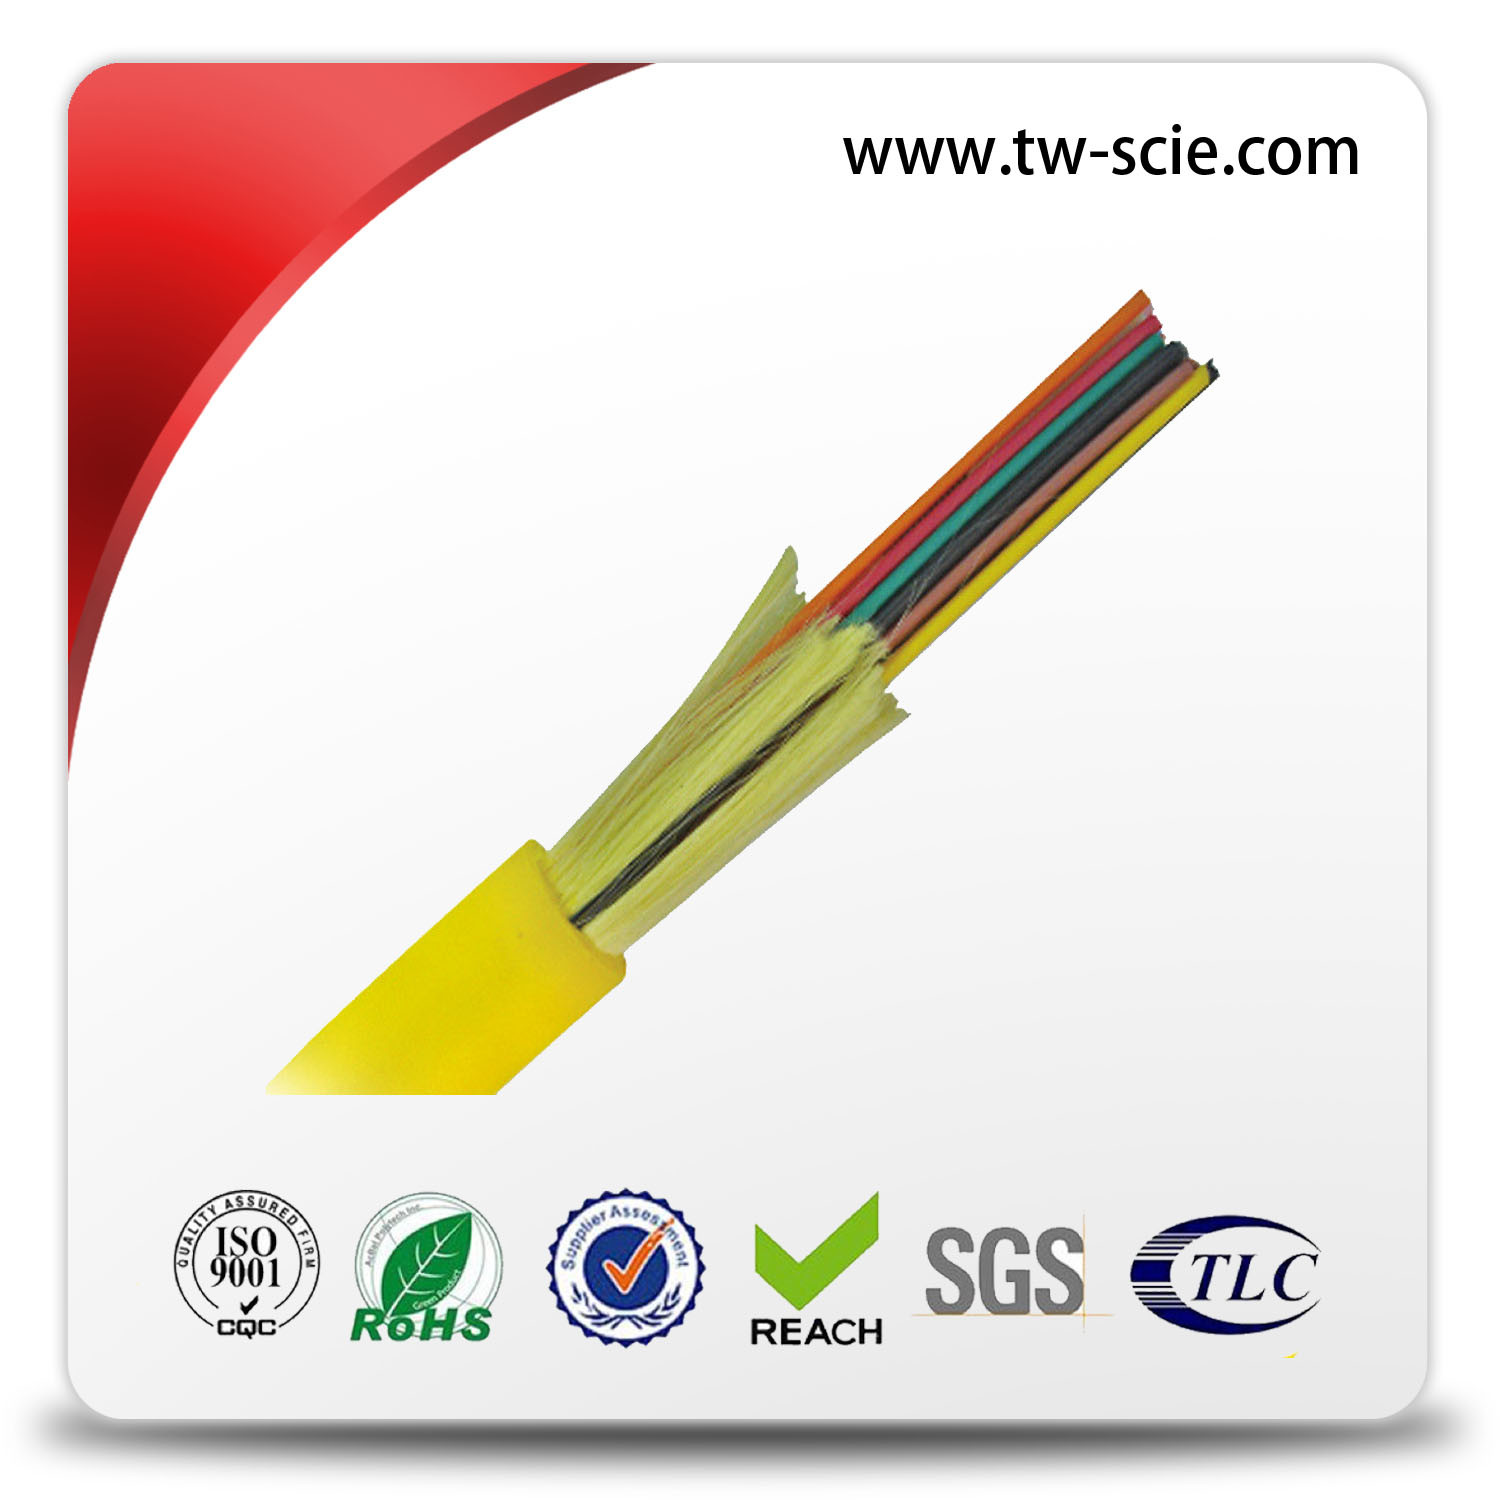 1-48 Cores Multi-Purpose Distribution Cable 4 Core Multimode Fiber Optic Cable